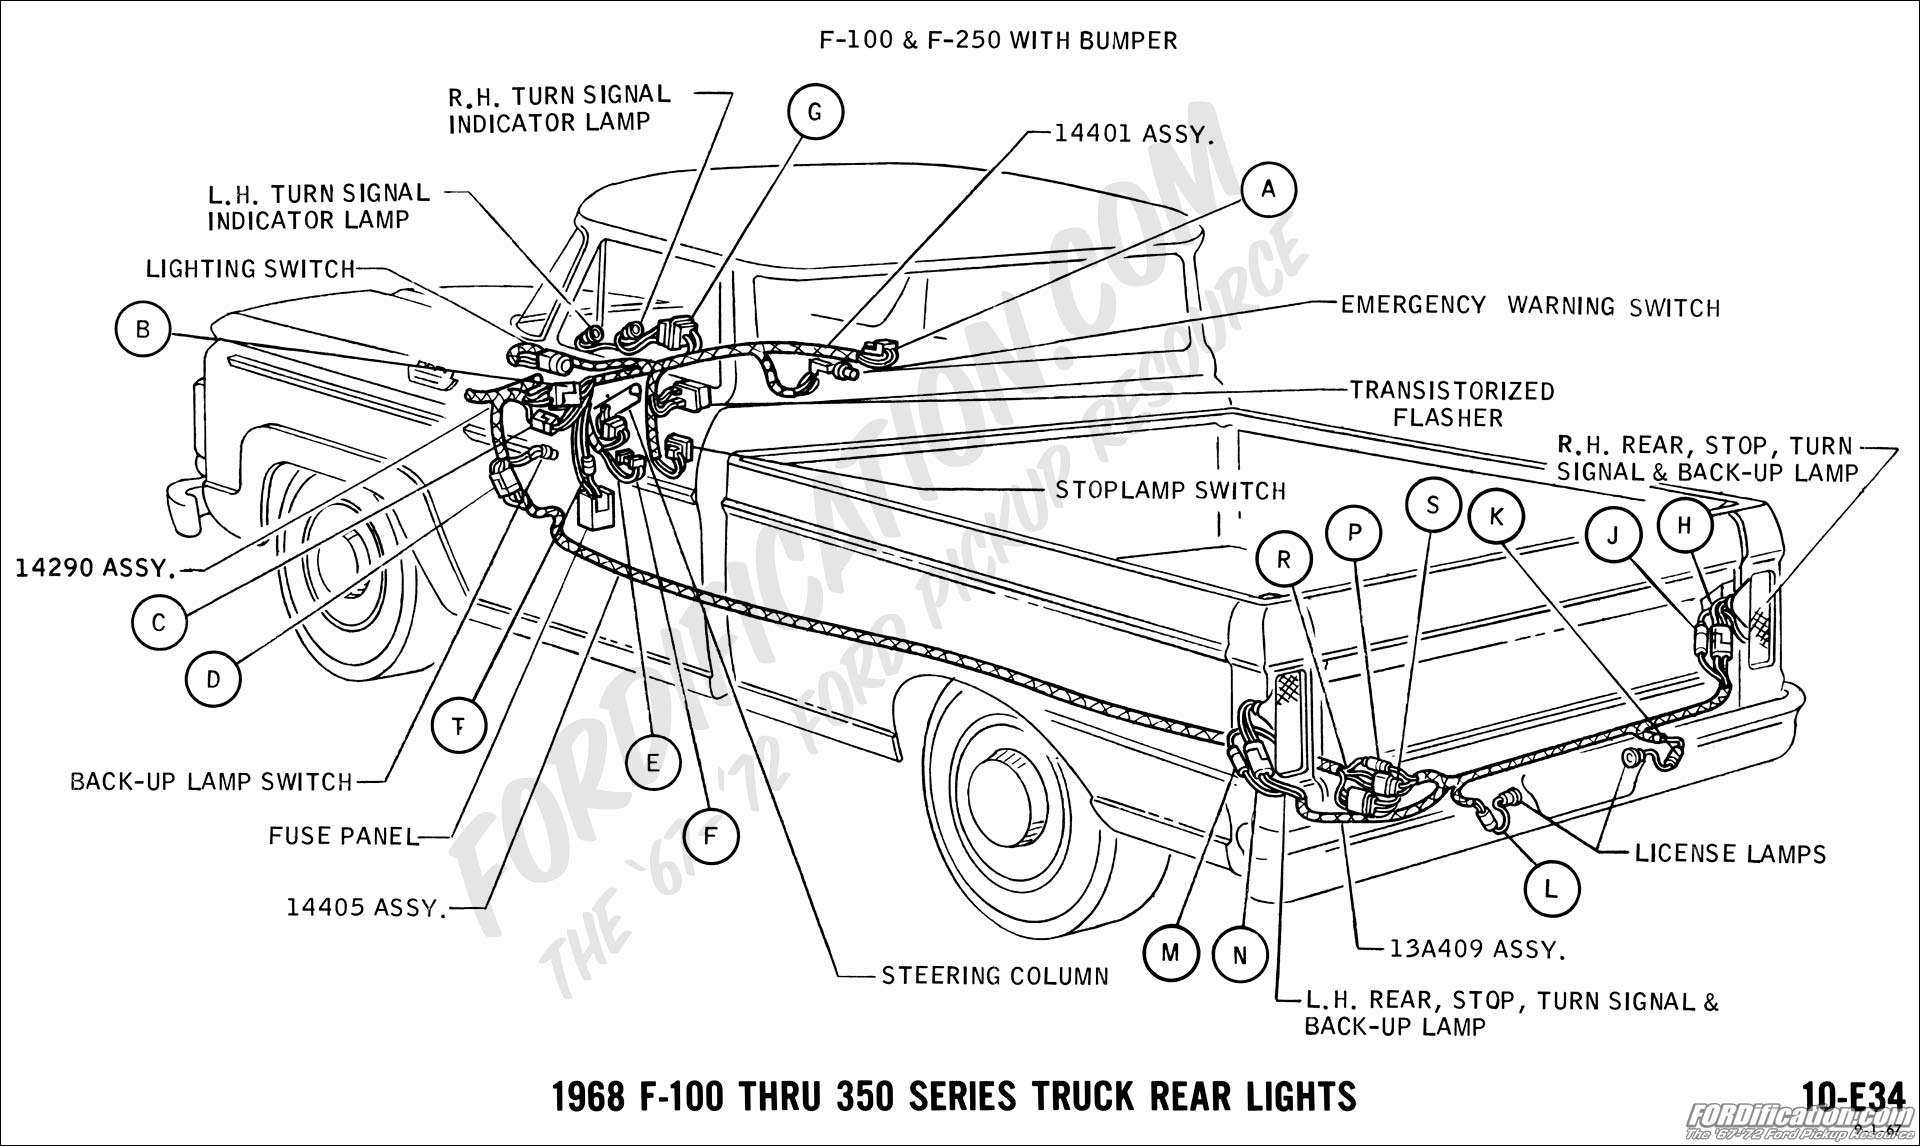 Ford Truck Technical Drawings and Schematics - Section H ... on 1968 ford steering column sensor, 1968 steering box diagram, 1968 ford steering column repair, 1965 riviera steering column diagram, 1969 camaro power steering diagram, ford power steering diagram, 66 ford mustang steering diagram, 1968 mustang steering column diagram, 1968 ford radio schematic, 1967 mustang steering column diagram, 1968 chevelle steering column diagram, ford mustang wiring diagram, ford steering parts diagram, 68 chevelle steering column diagram, 1970 nova steering column diagram, 1973 f100 steering diagram, 67 c10 column diagram, 1965 econoline shift column diagram, 1967 mustang power steering diagram,